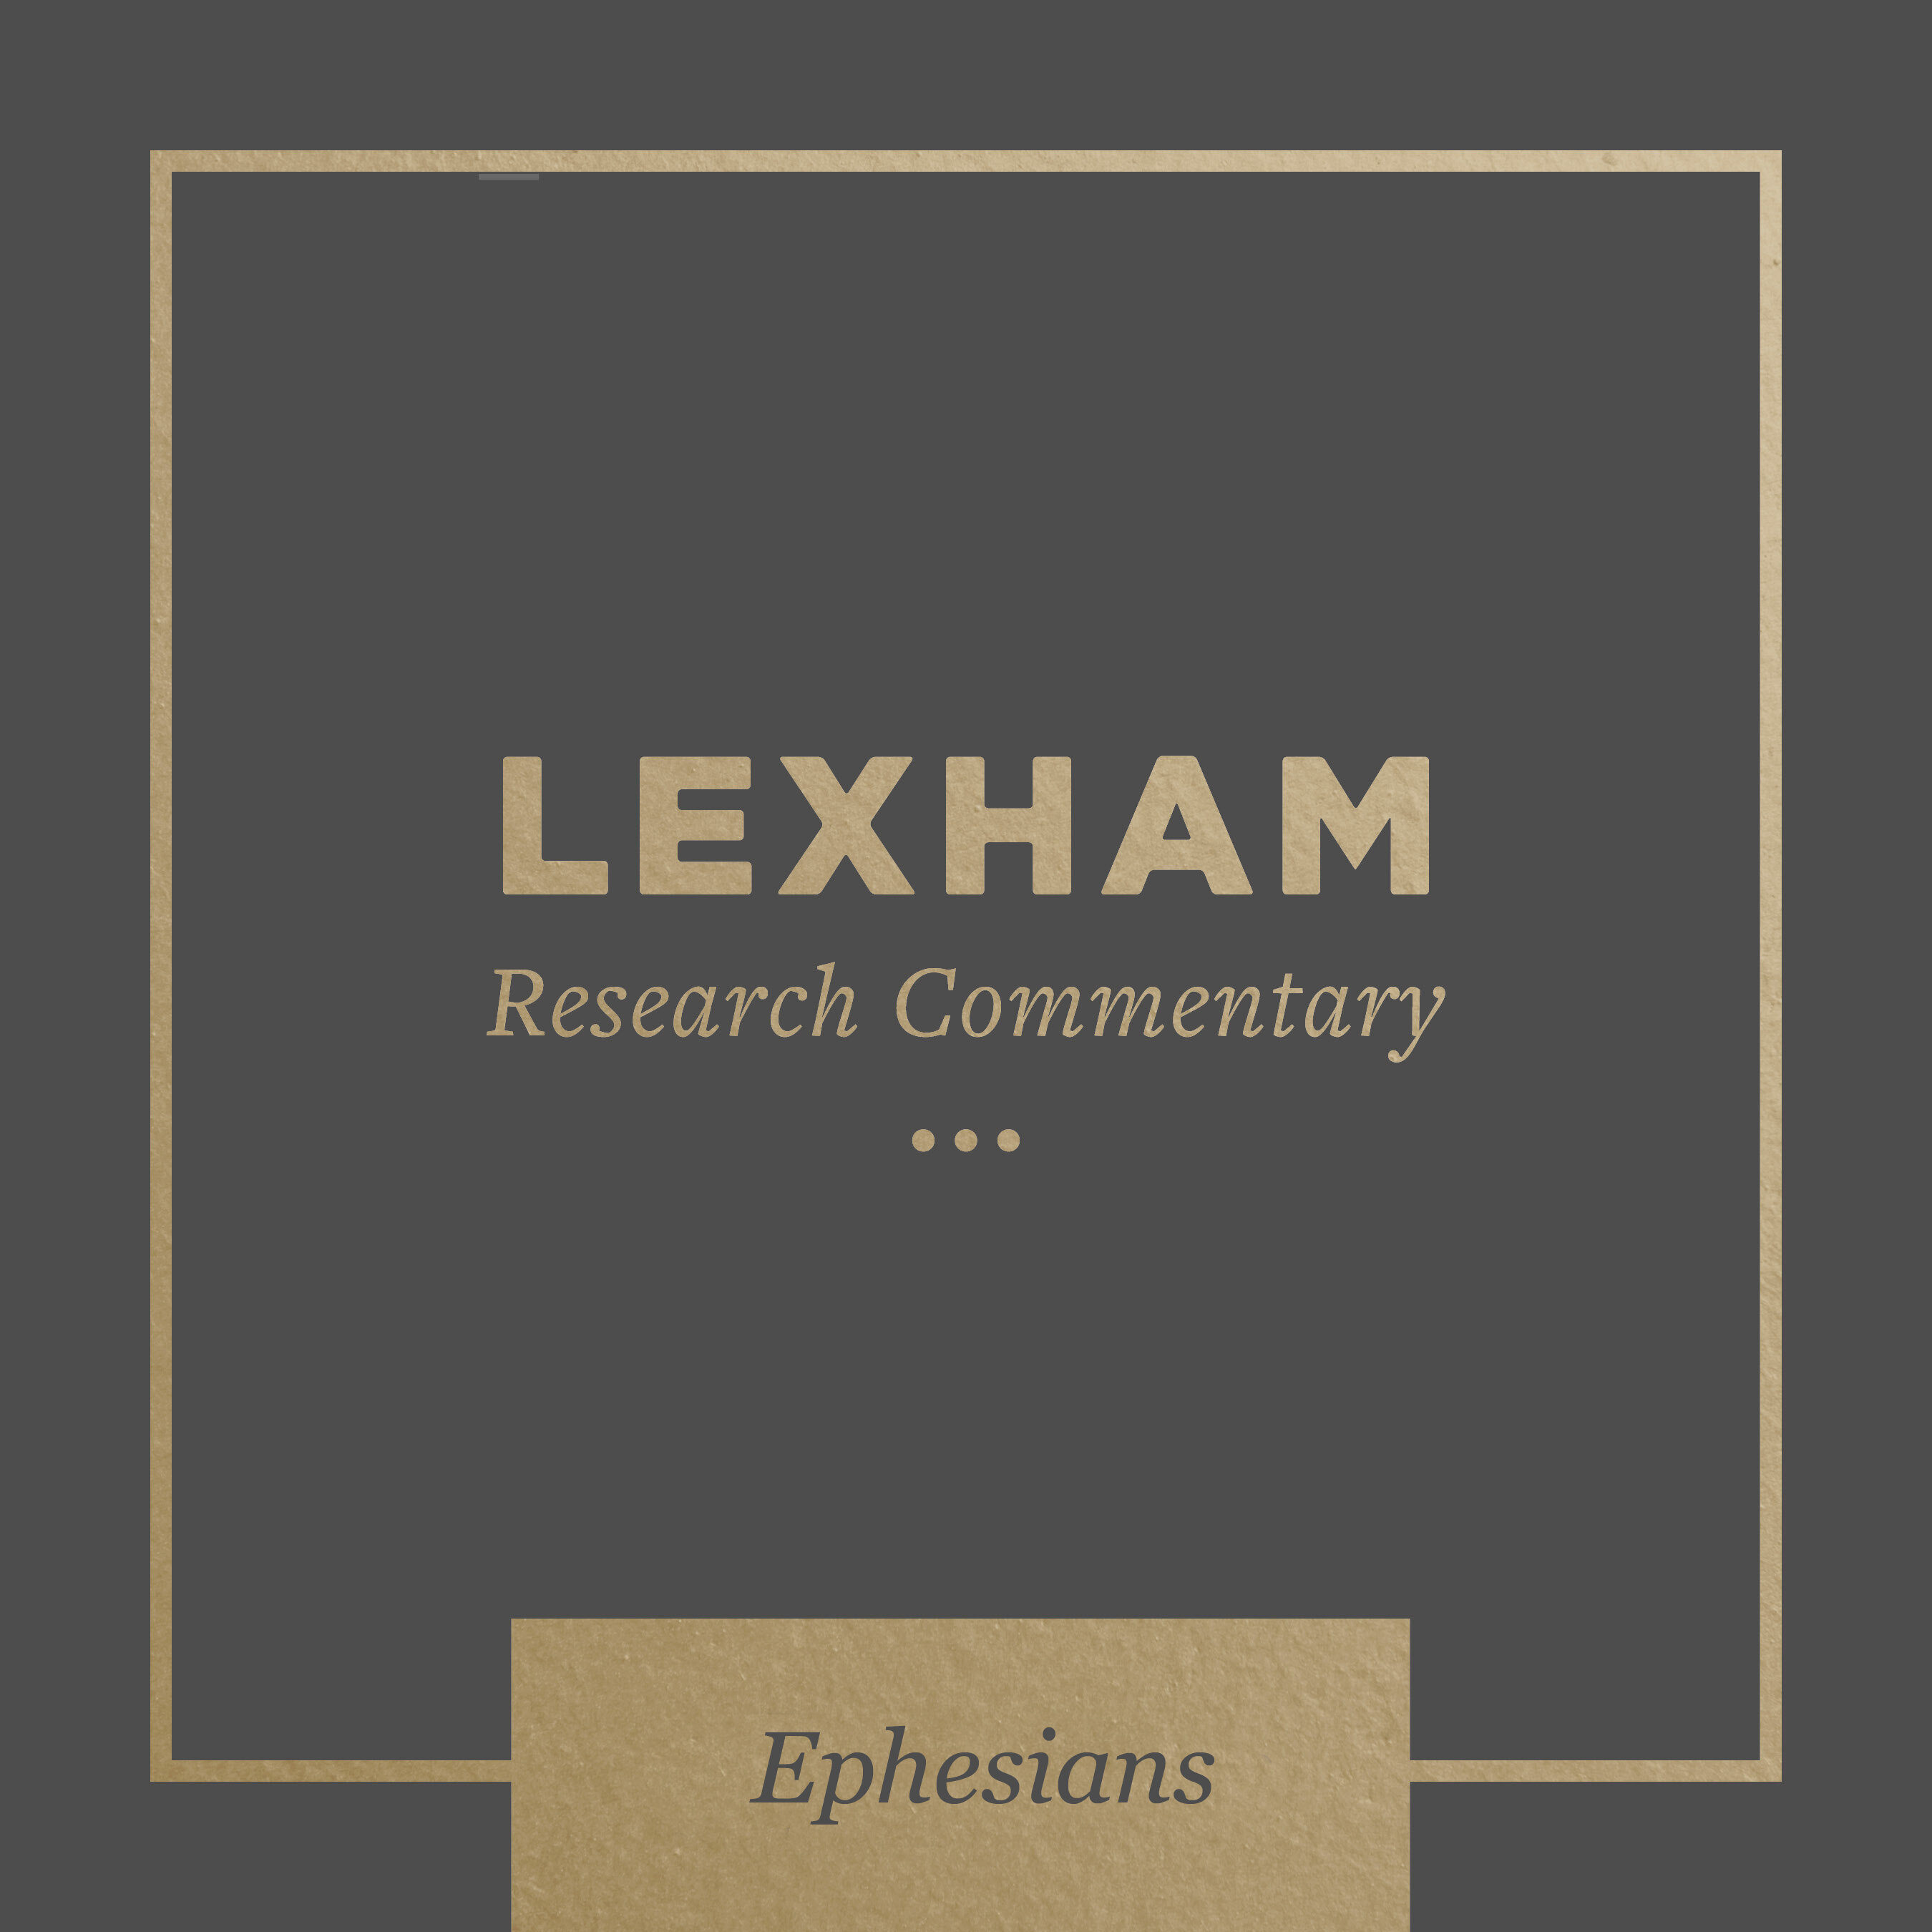 Lexham Research Commentary: Ephesians